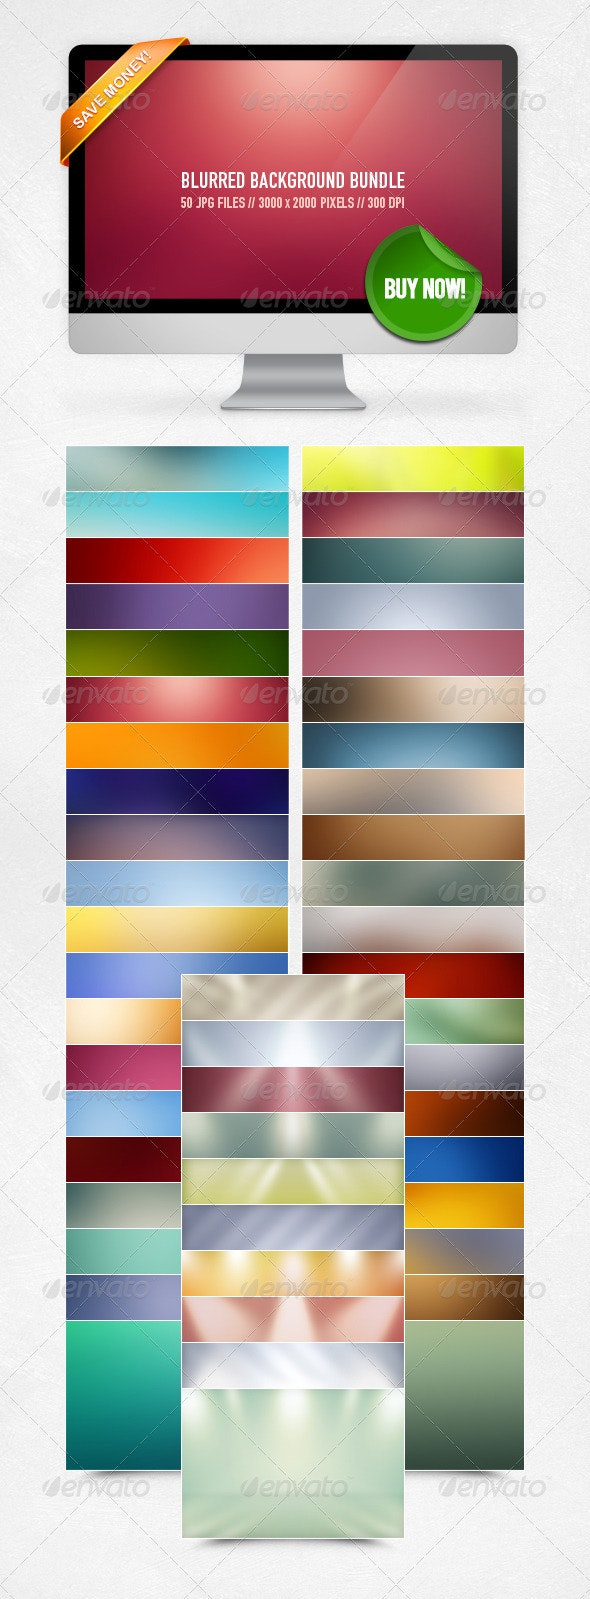 Blurred Background Bundle - Abstract Backgrounds